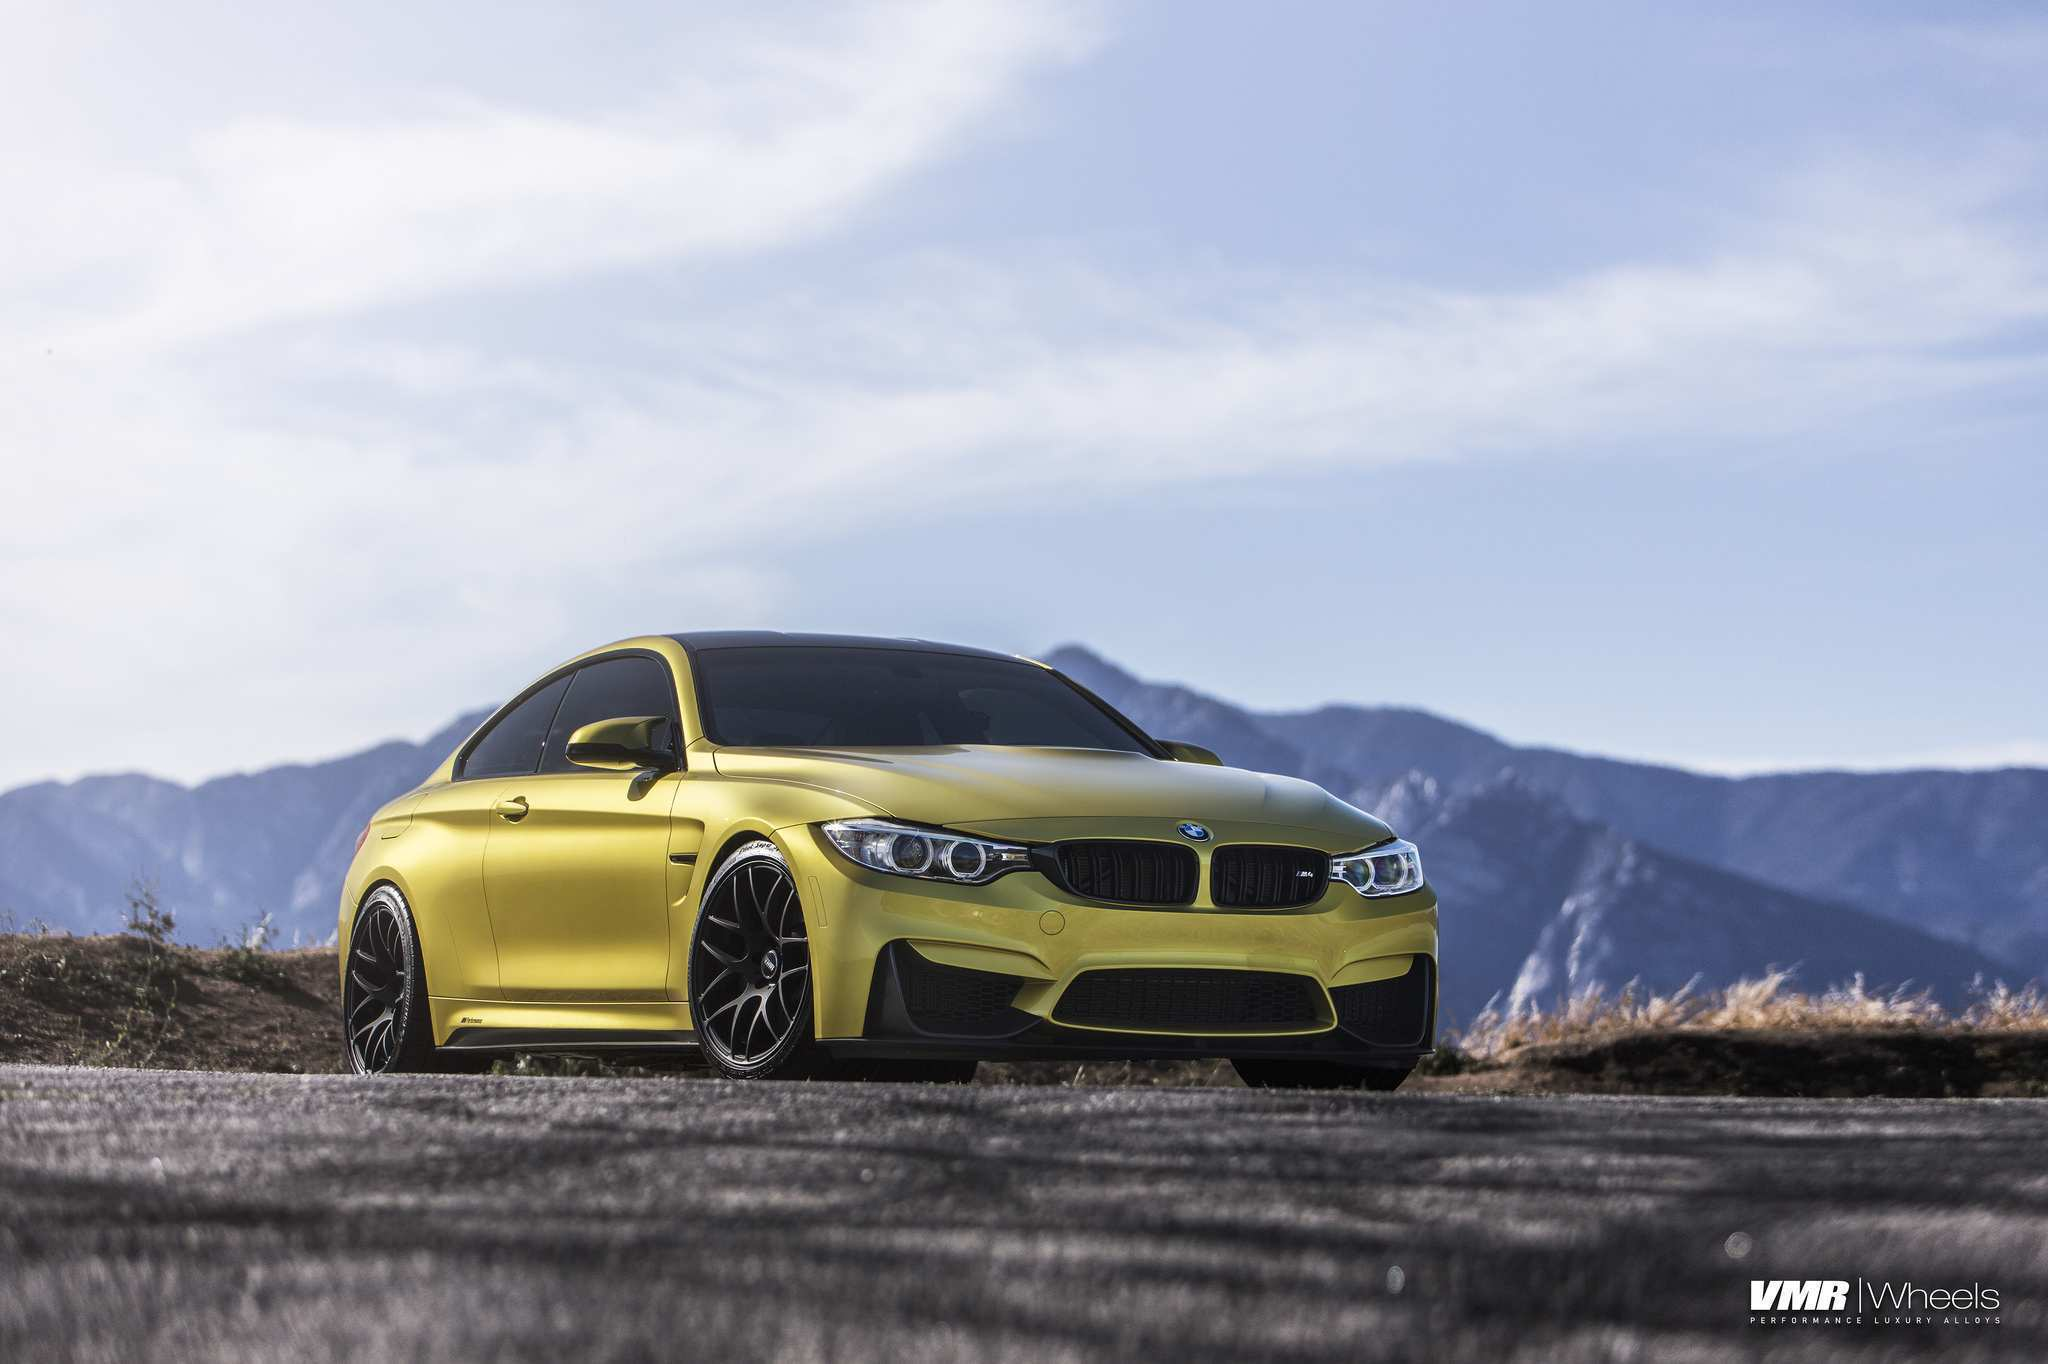 78 Gallery of 2020 BMW M4 Colors Concept for 2020 BMW M4 Colors